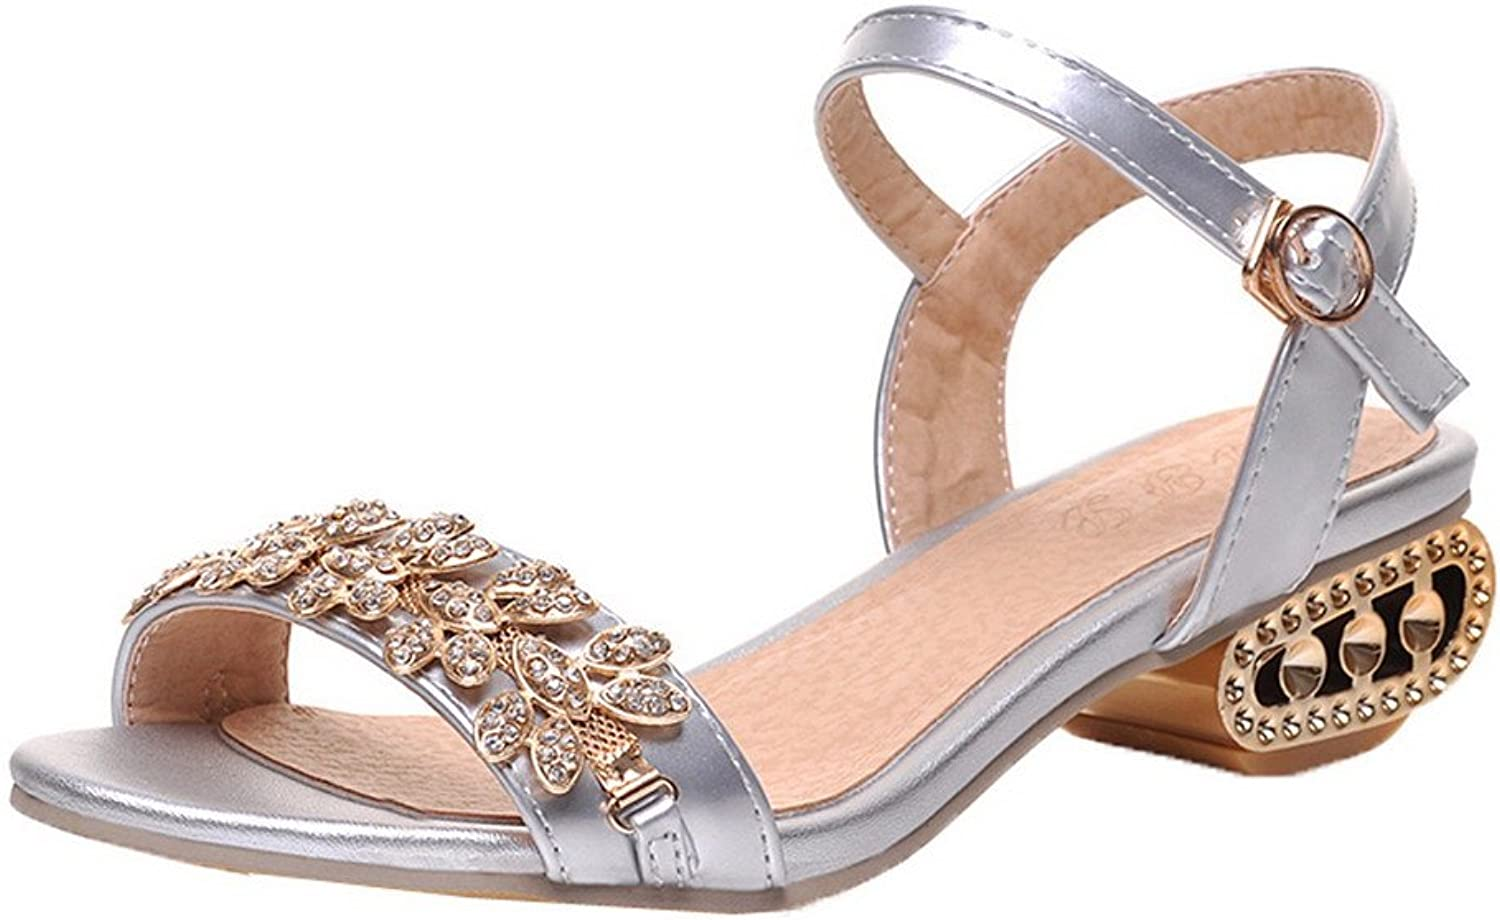 AmoonyFashion Women's Low-Heels Solid Buckle Open-Toe Sandals, BUTLT006675